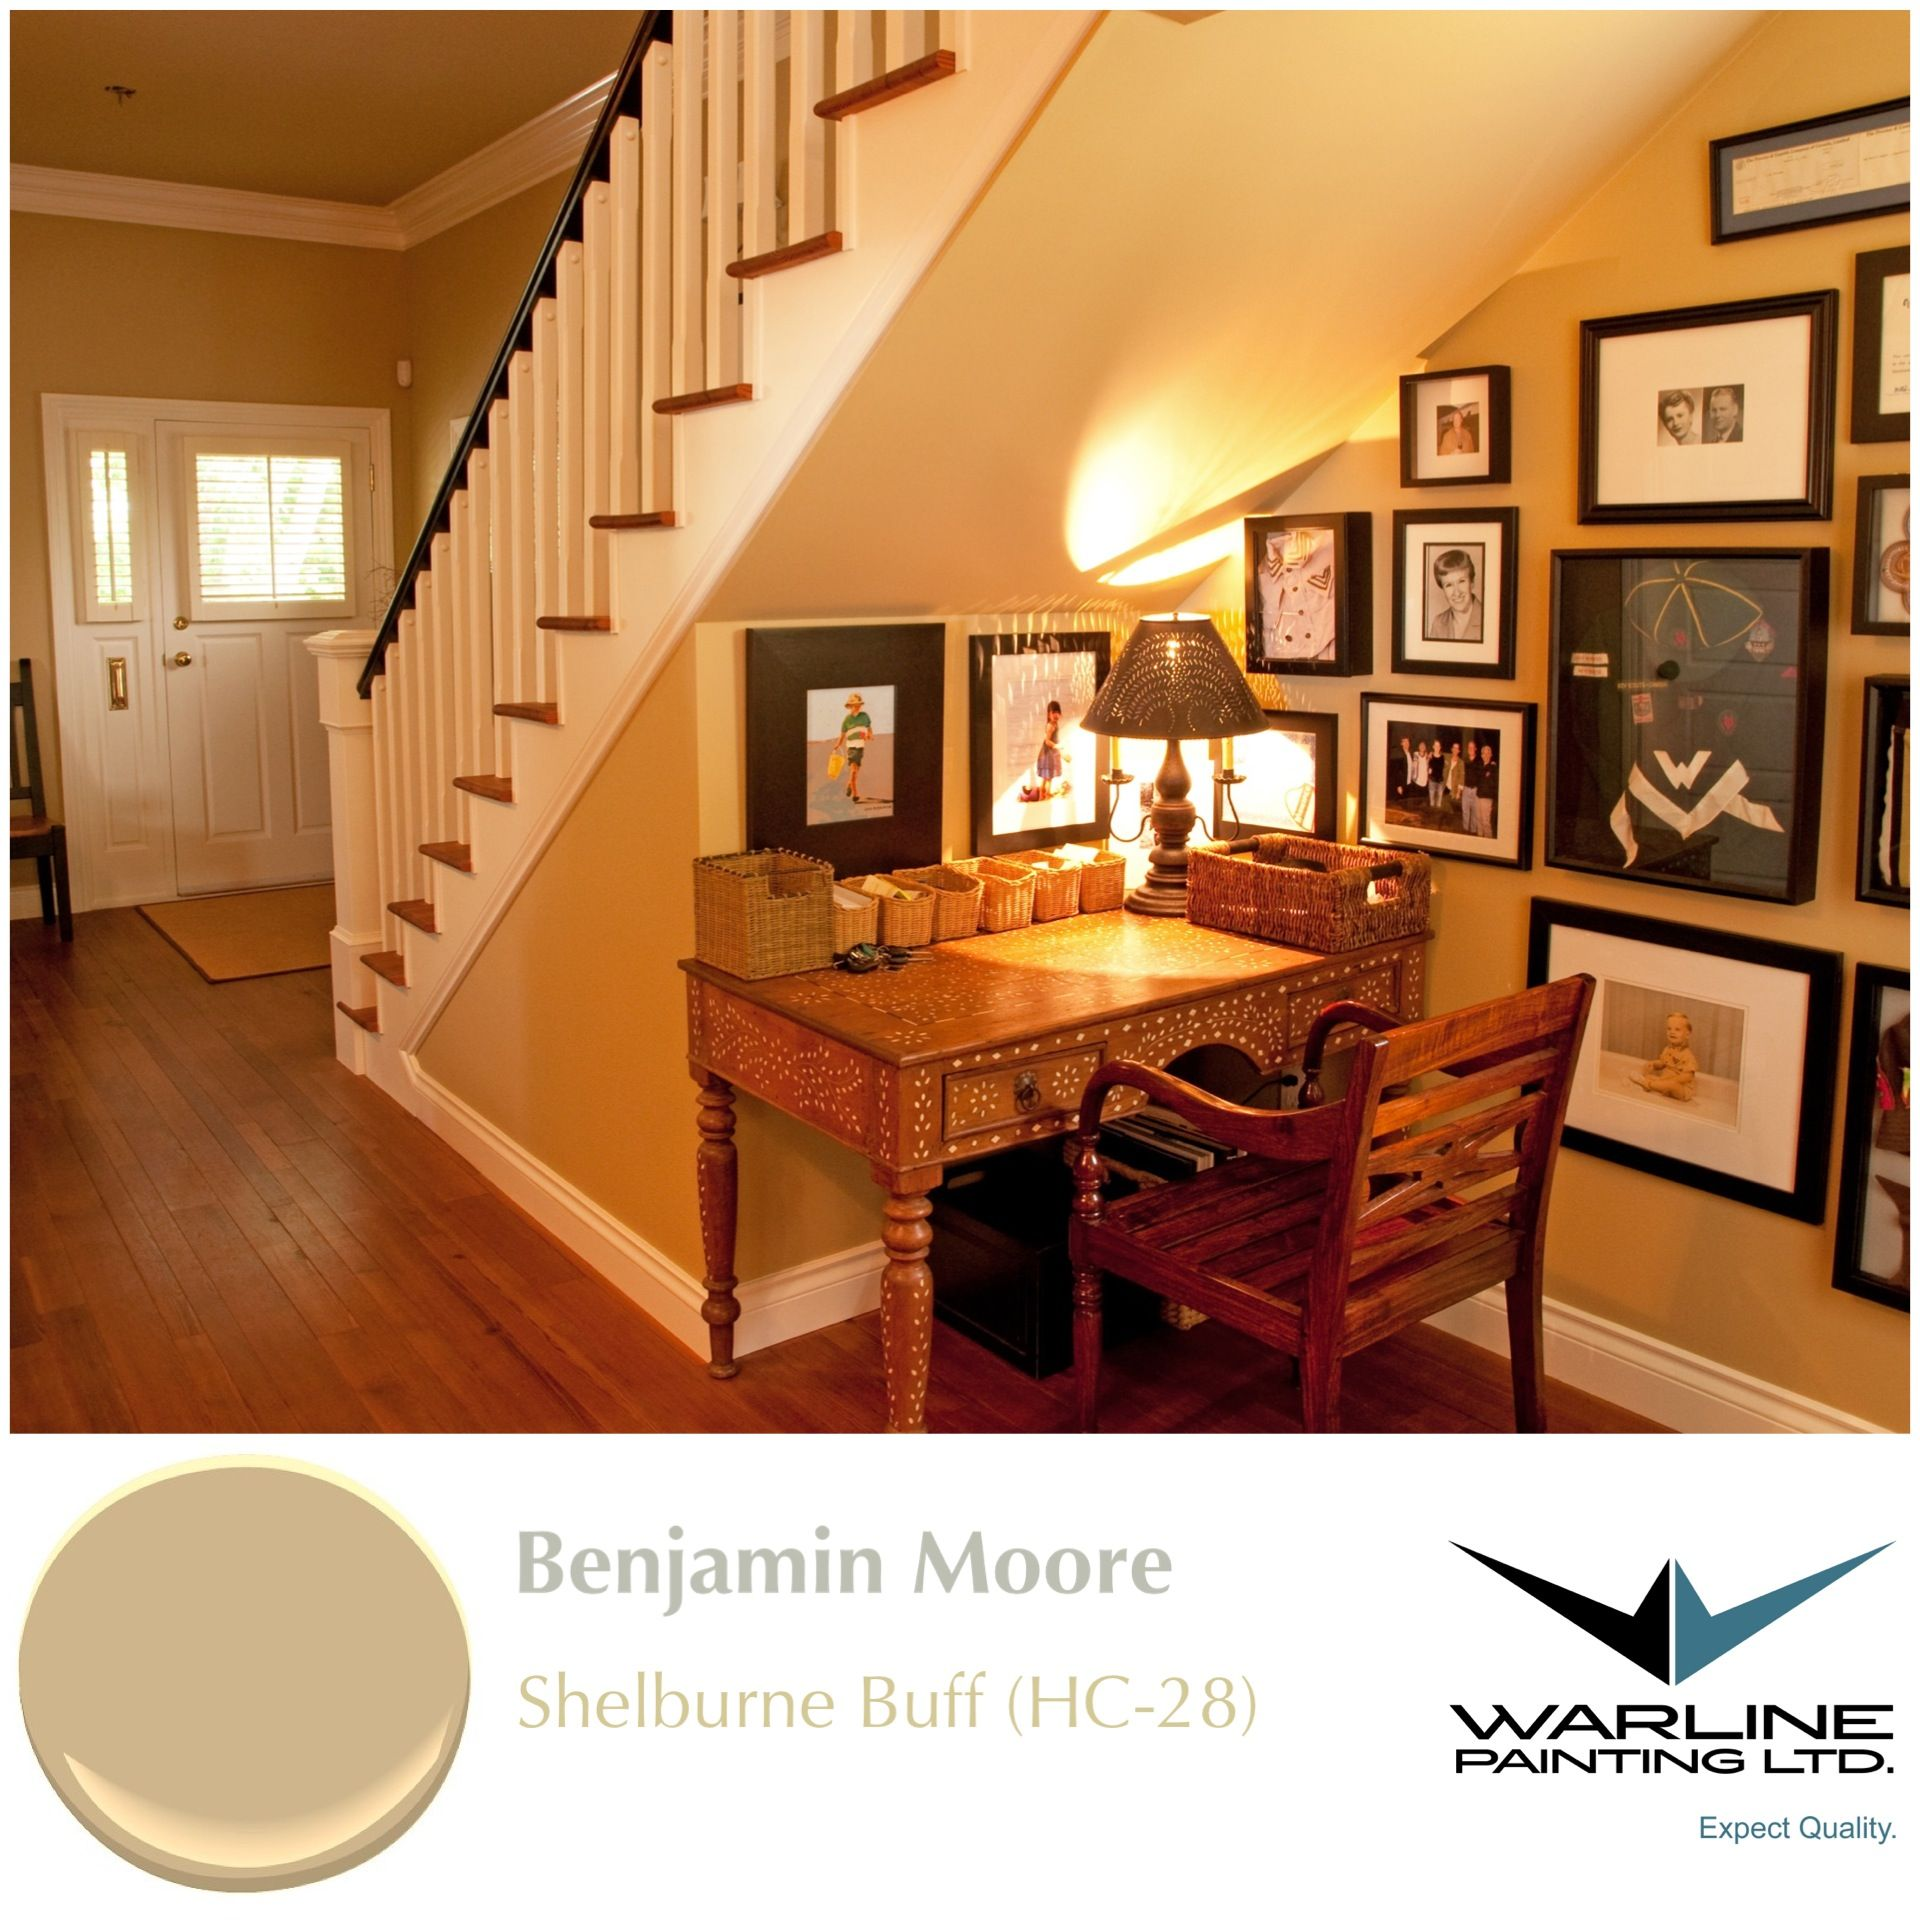 60 Unbelievable Under Stairs Storage Space Solutions: Benjamin Moore Shelburne Buff HC-28 Has The Homiest